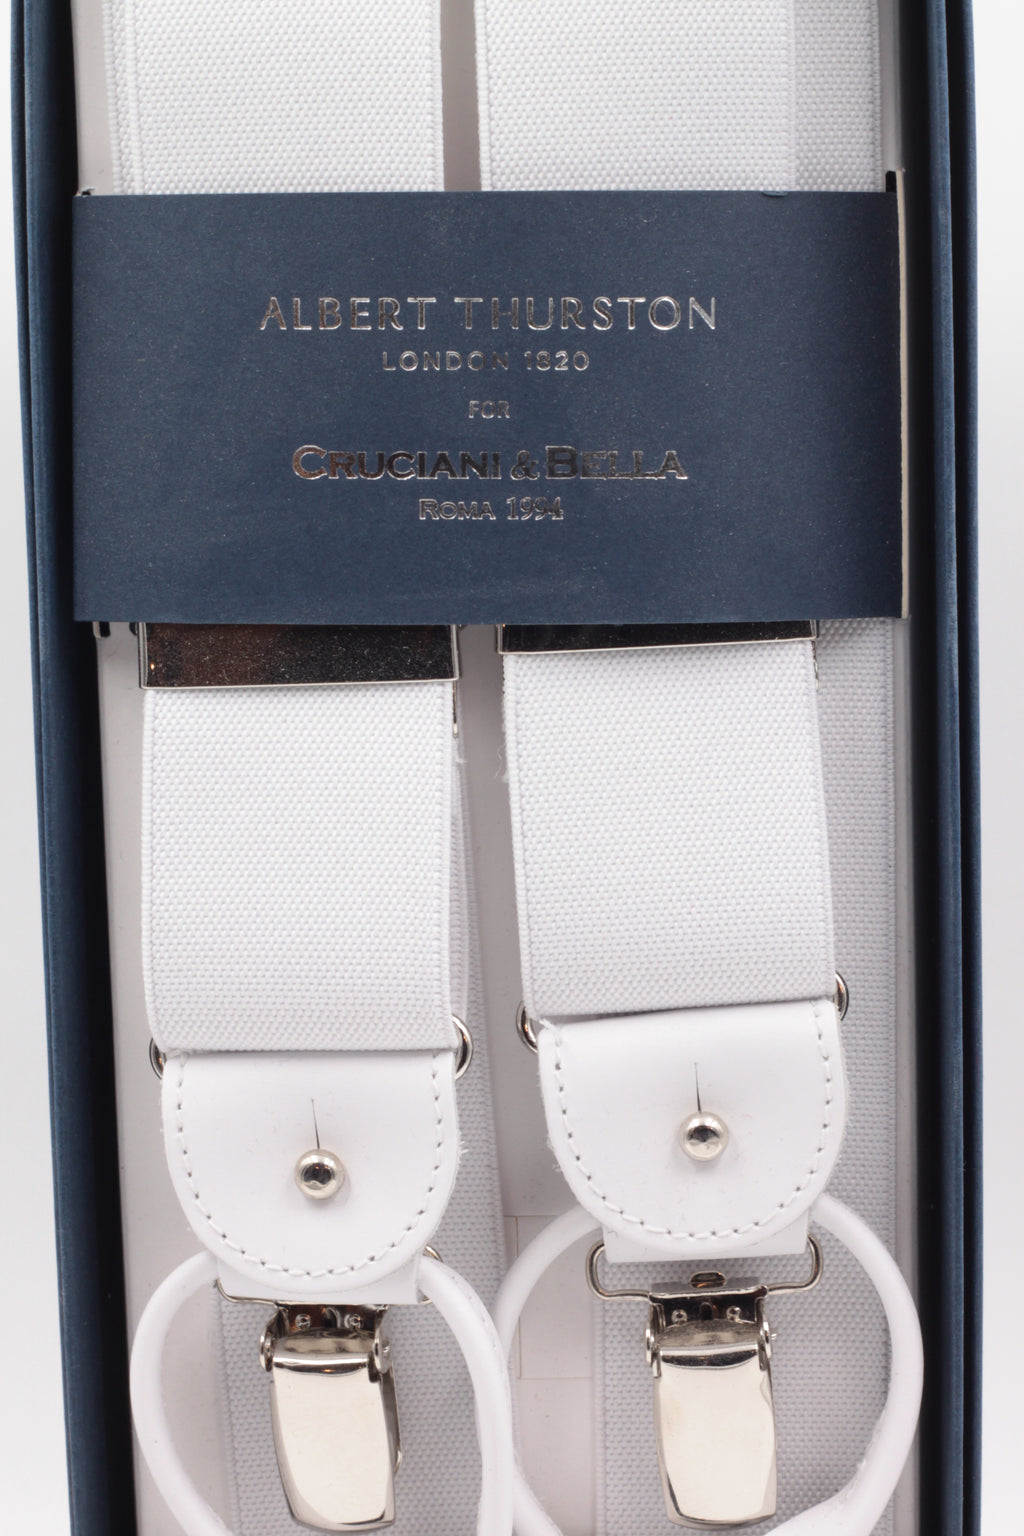 Albert Thurston for Cruciani & Bella Made in England 2 in 1 Adjustable Sizing 35 mm elastic braces White plain Y-Shaped Nickel Fittings